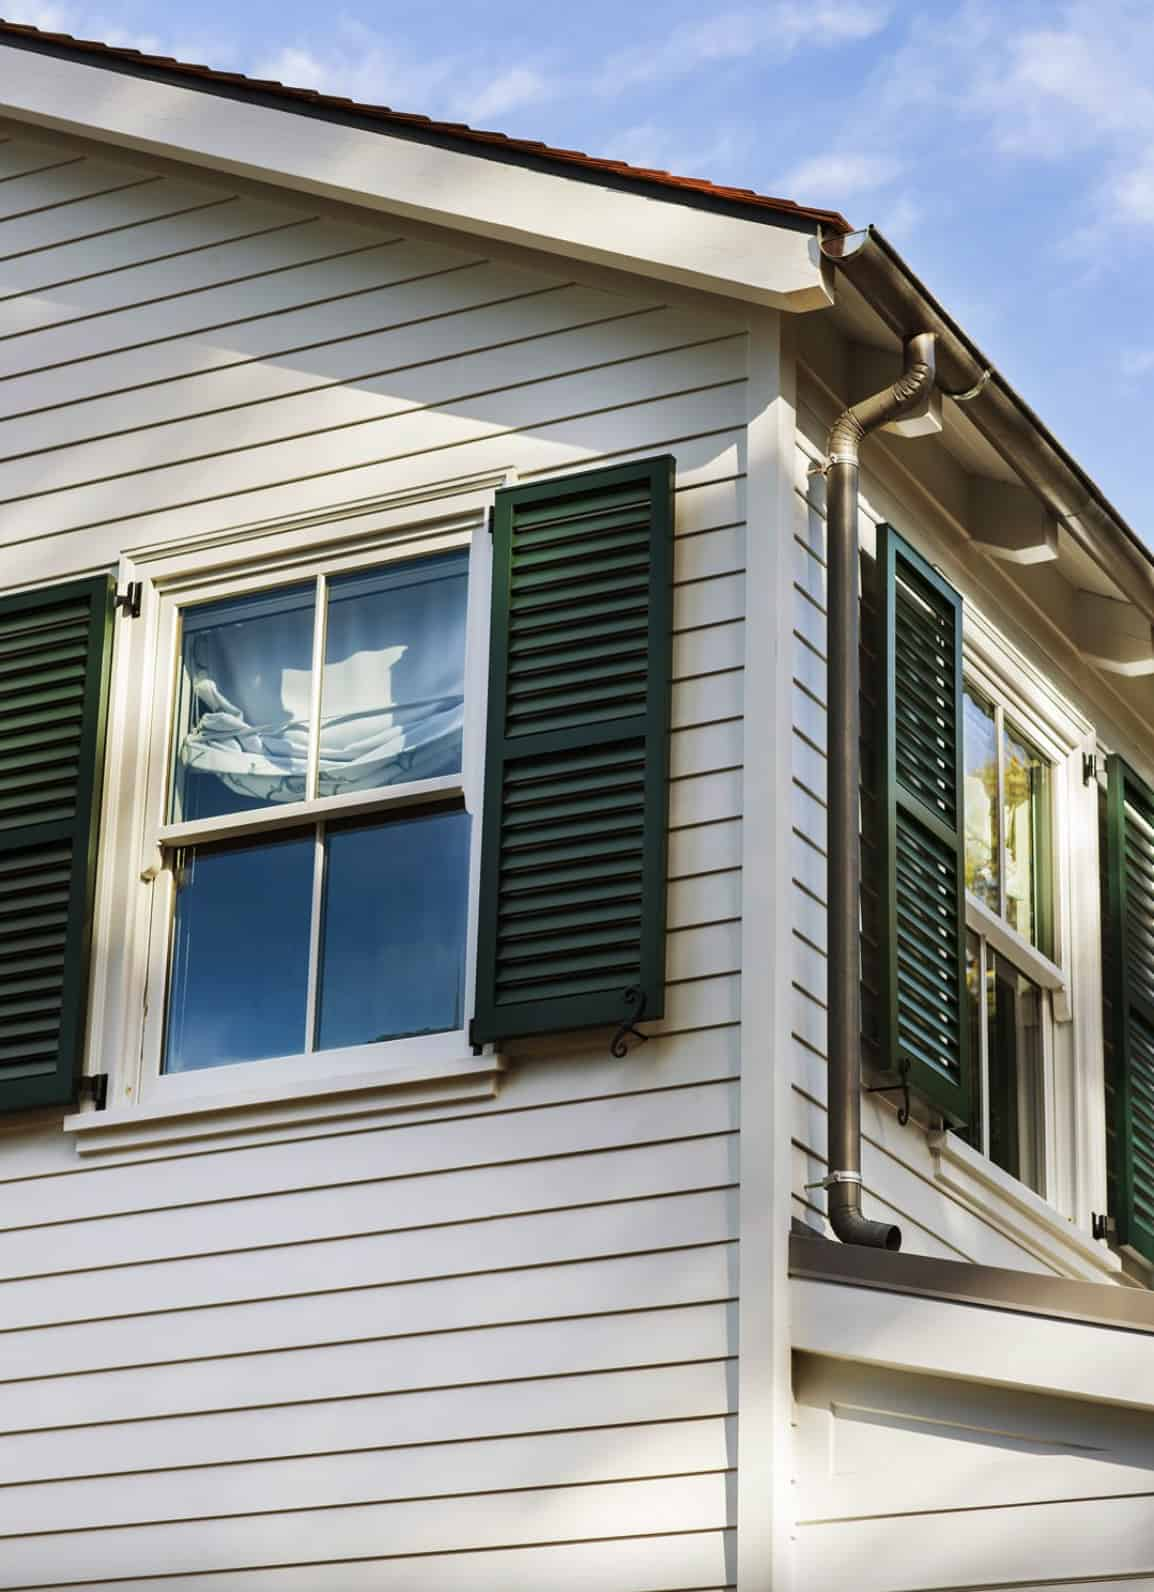 gutter-and-downspout-detail-traditional-house-exterior